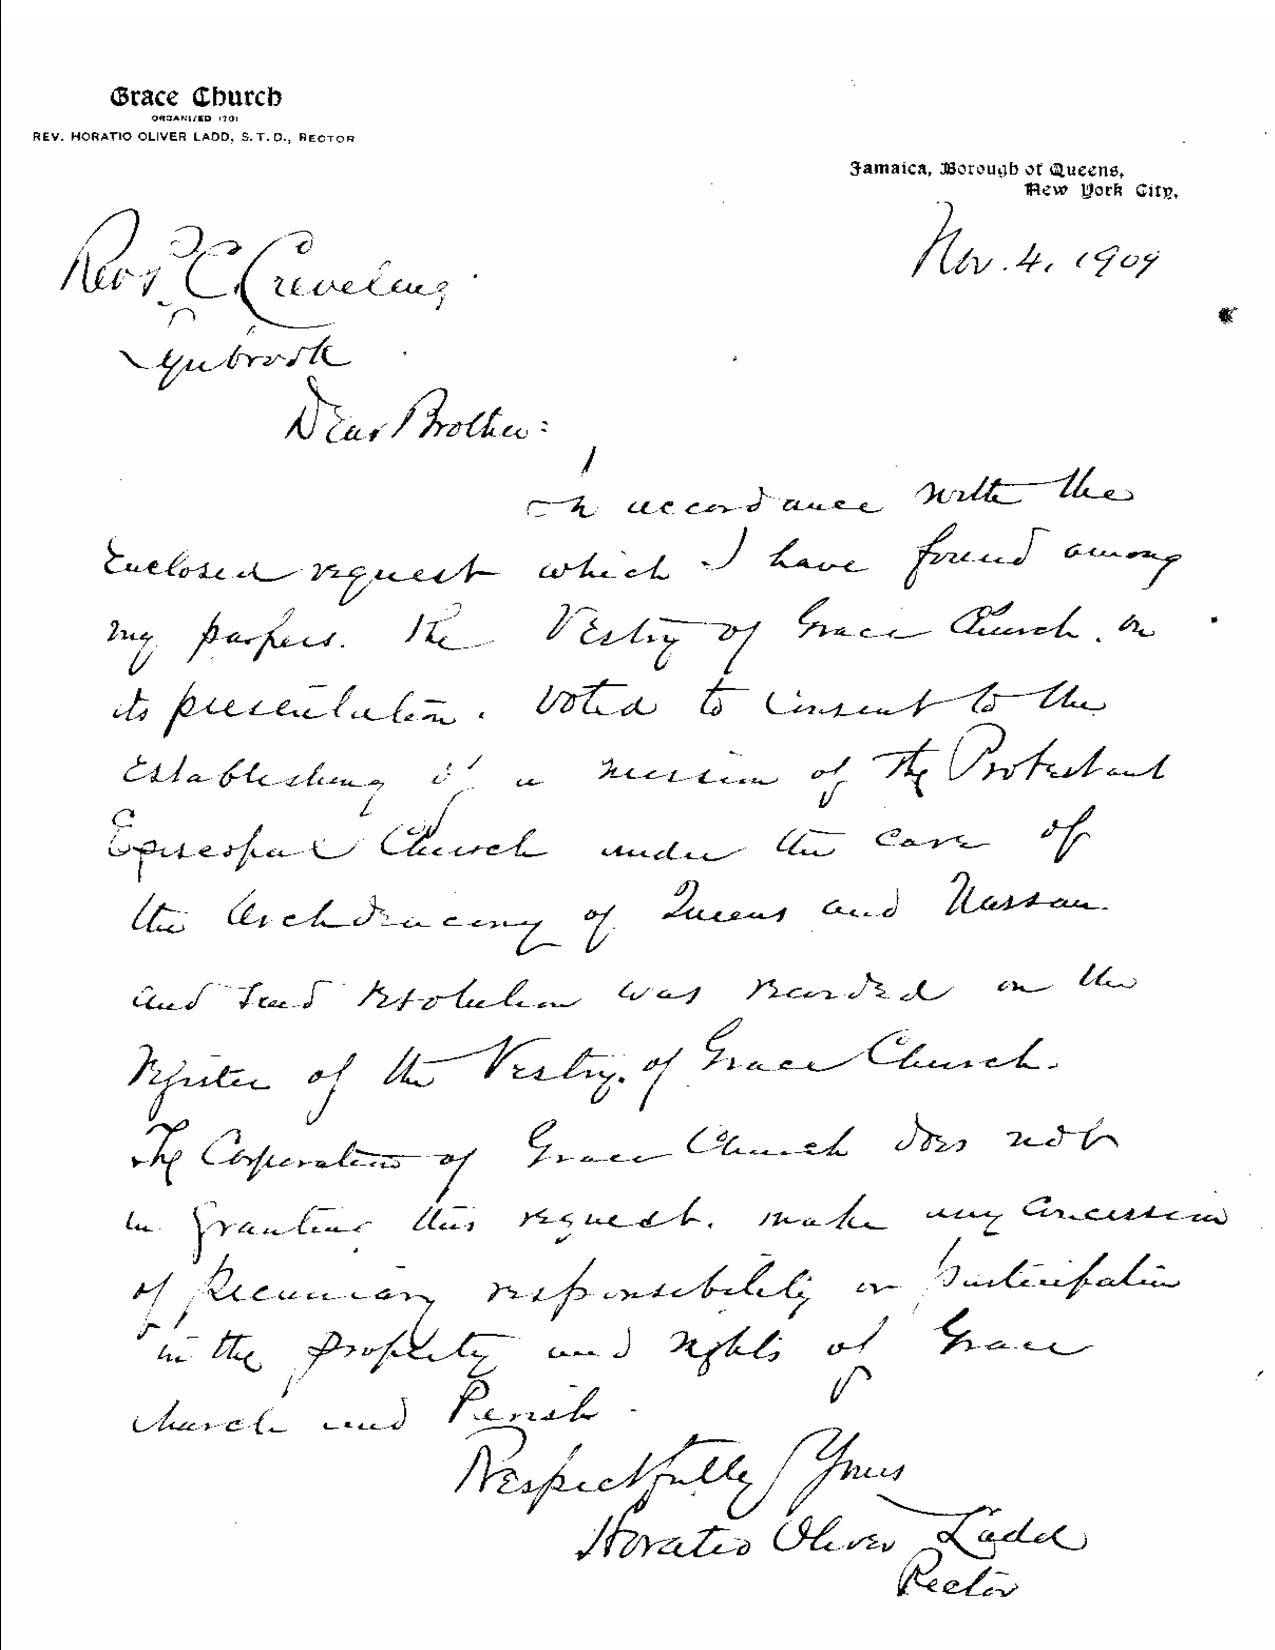 St. Peters Church 1909 Letter